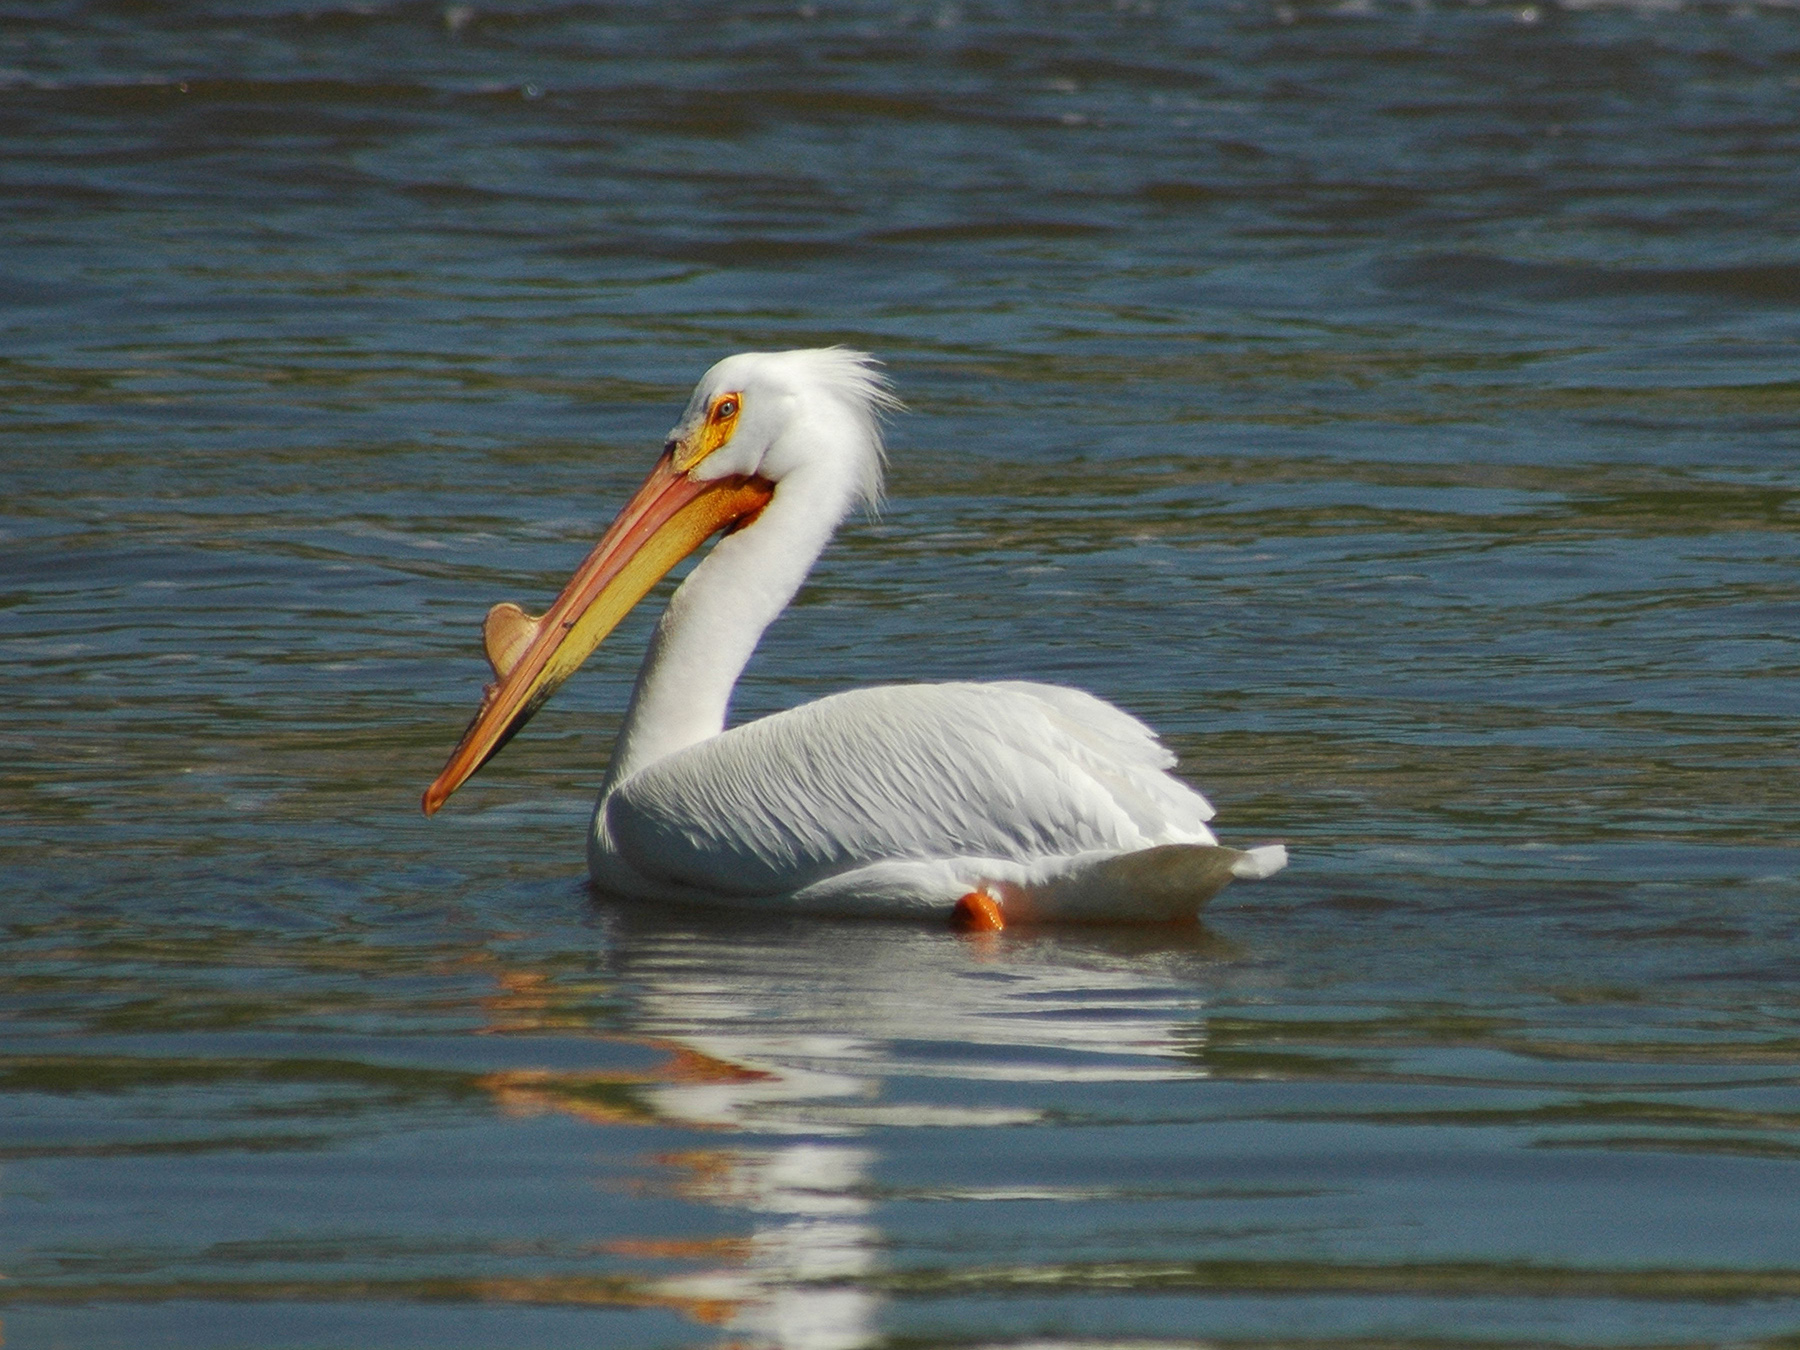 White Pelican the Gulf of Mexico. Credit U.S. Dept of Interior